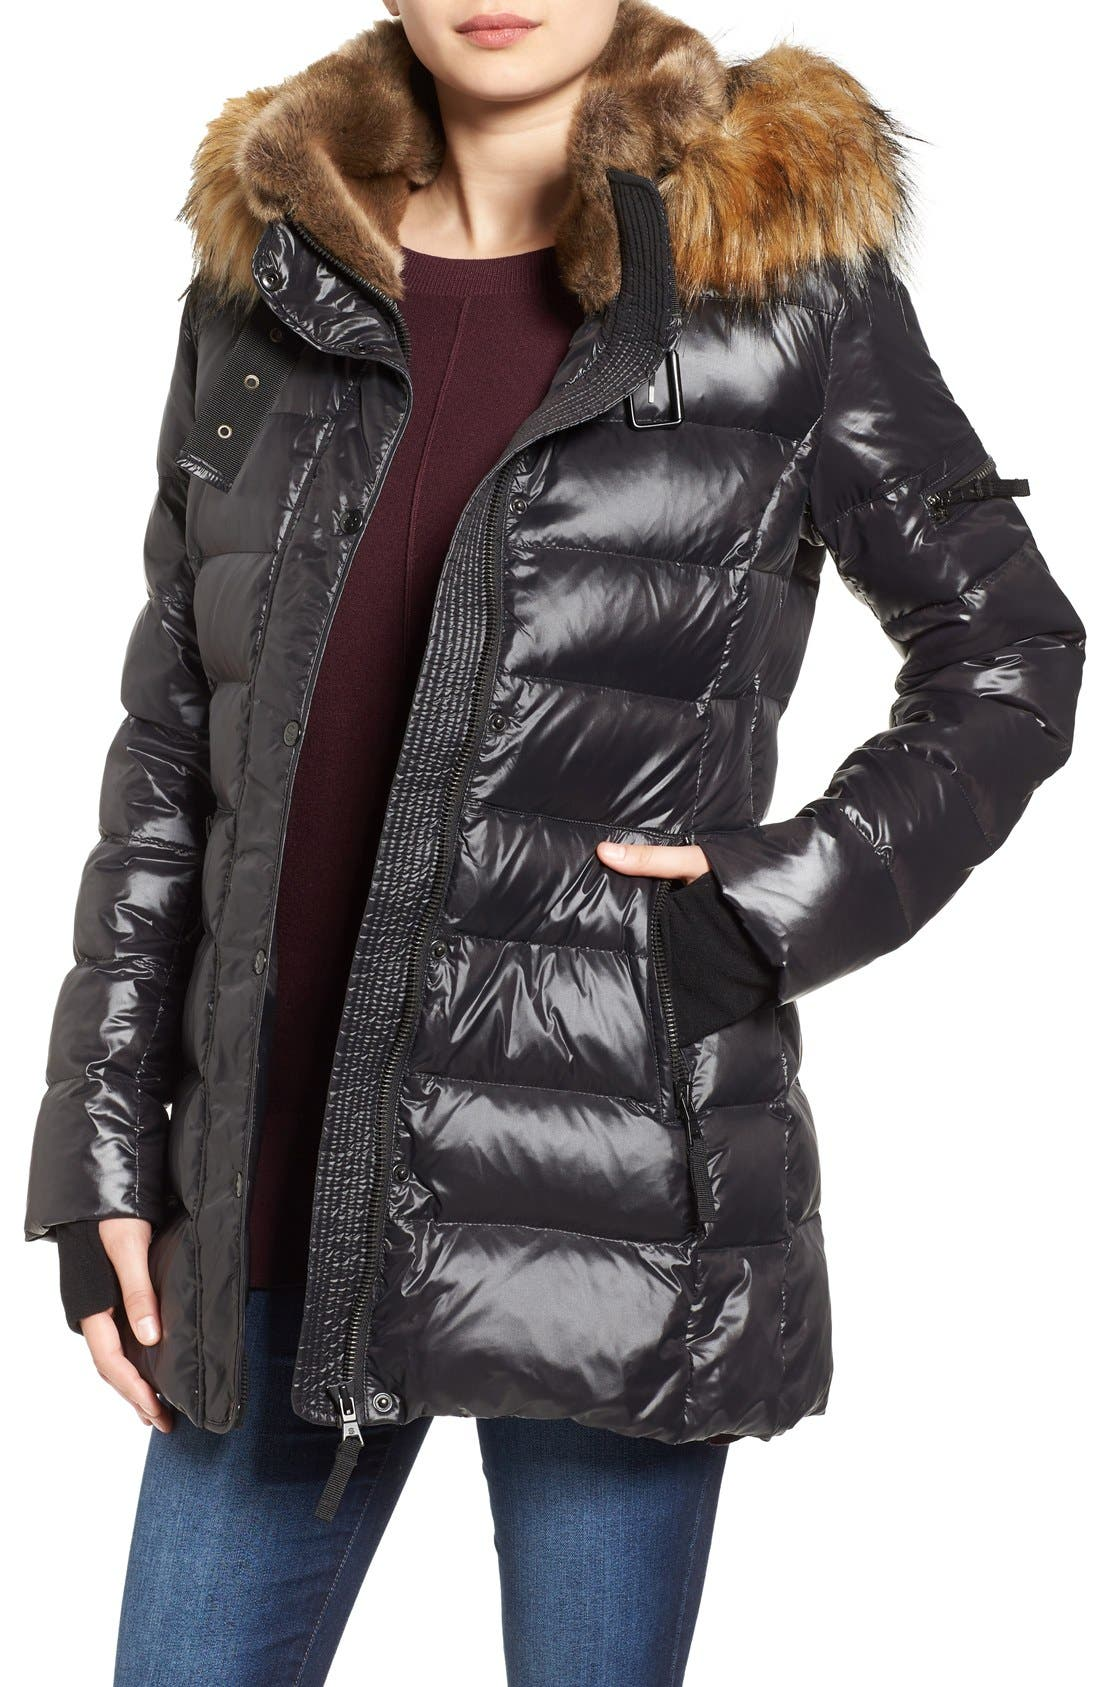 Main Image - 'Chelsea' Gloss Down Jacket with Removable Hood and Faux Fur Trim